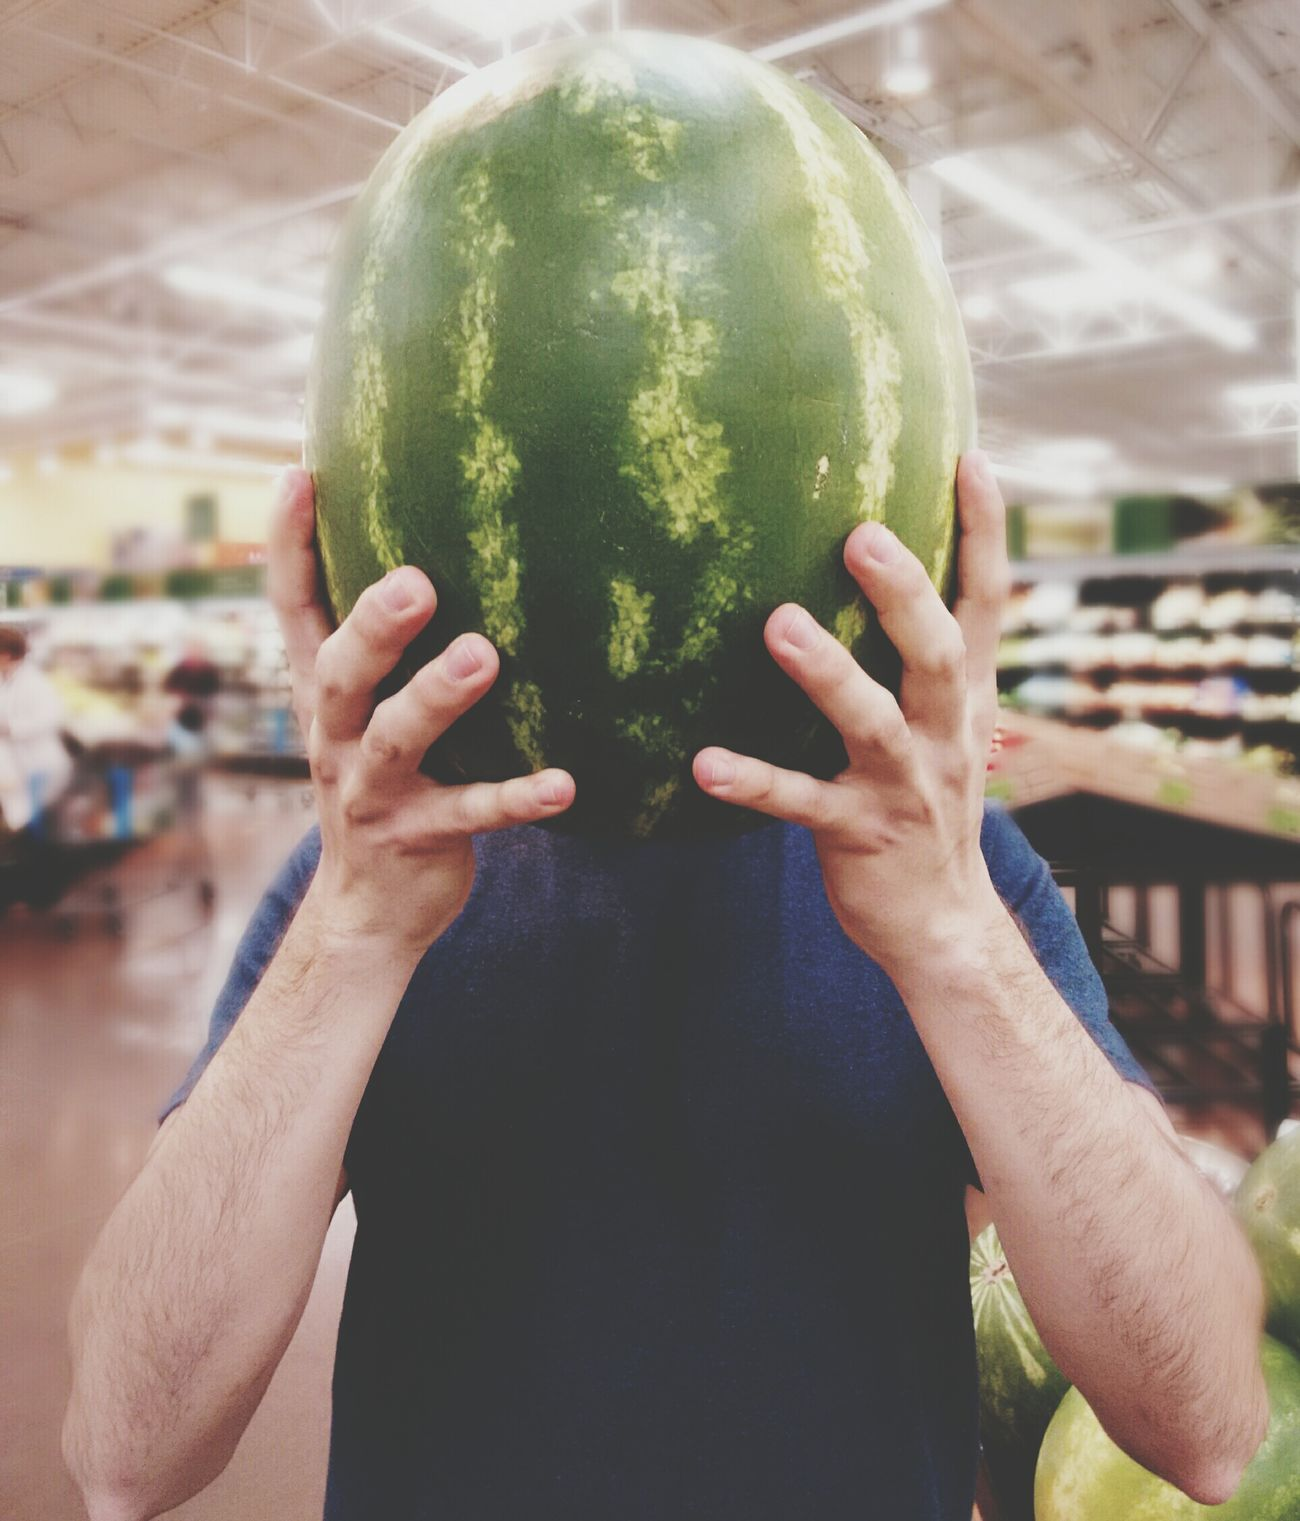 Melonhead Market Melon HEAD First Eyeem Photo Project Watermelon Art Share Mister Water